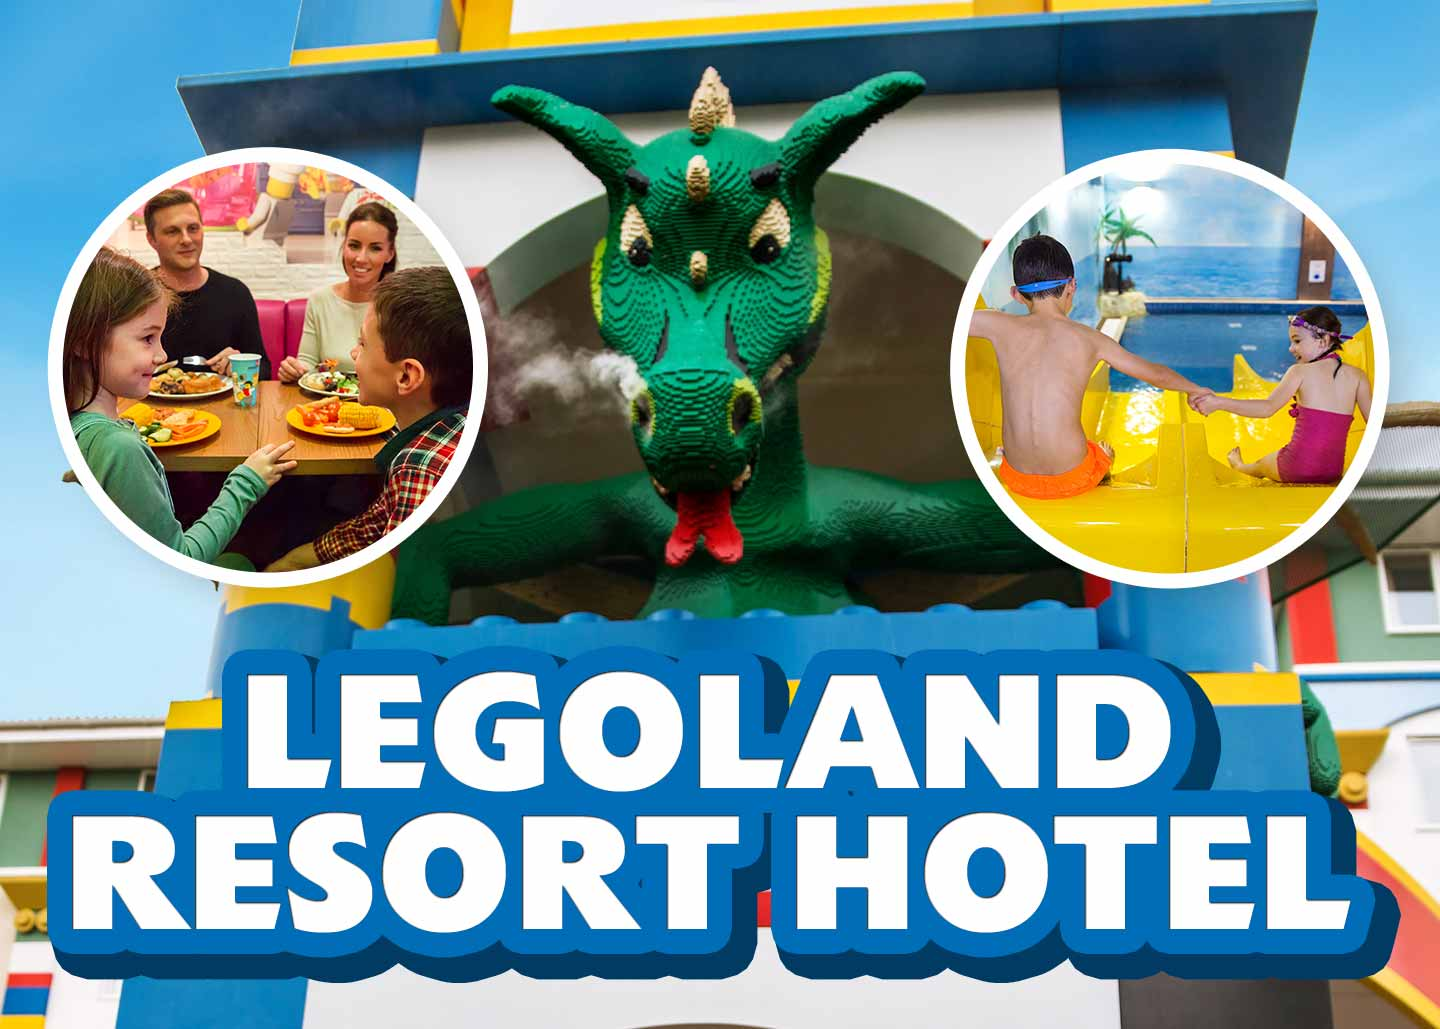 LEGOLAND Resort Hotel